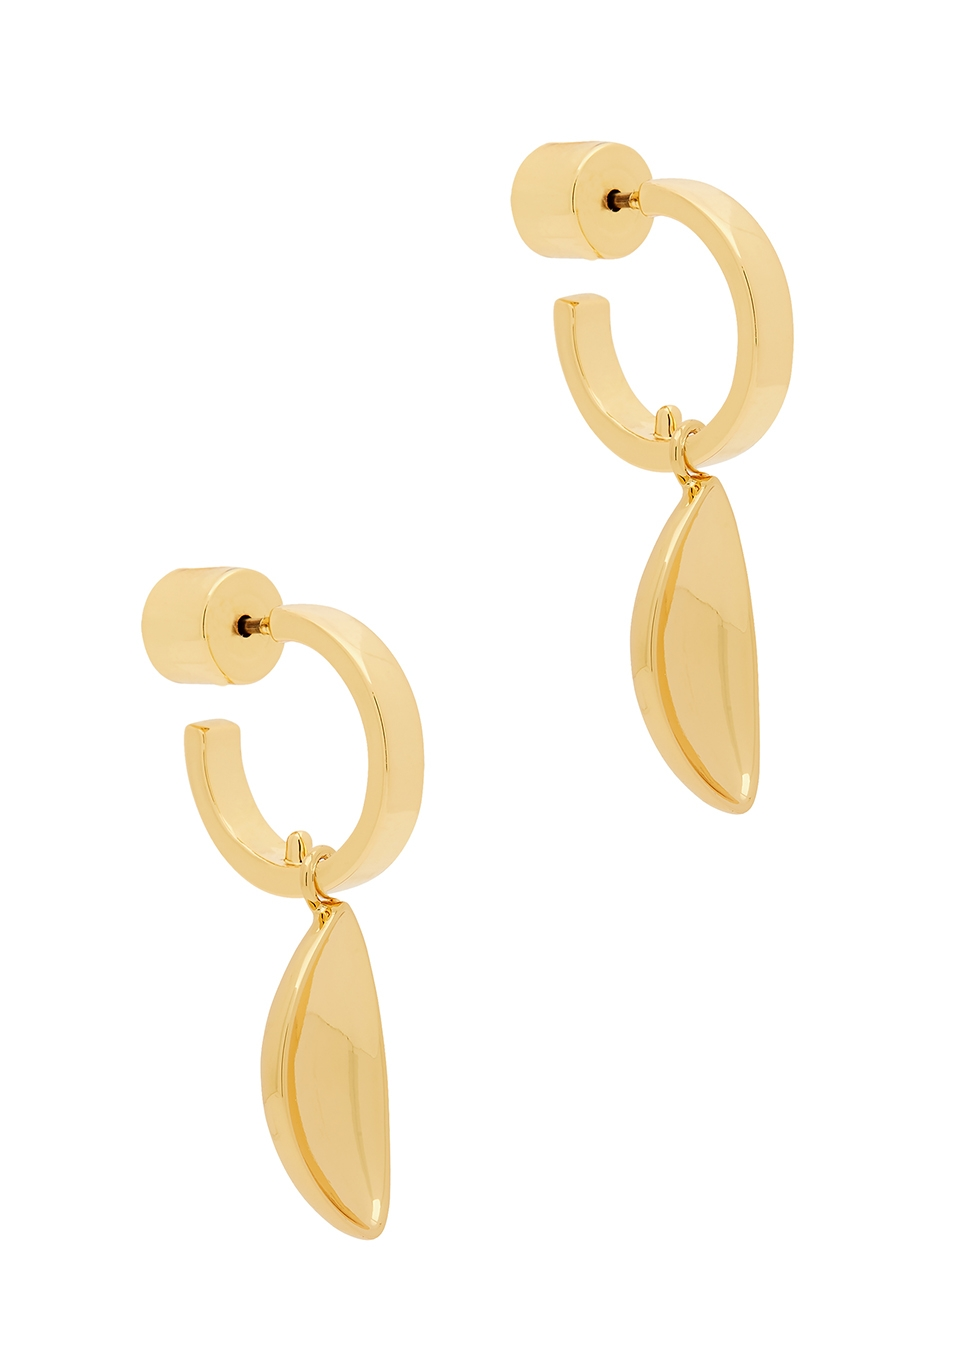 Cordo hoop earrings set - two pairs